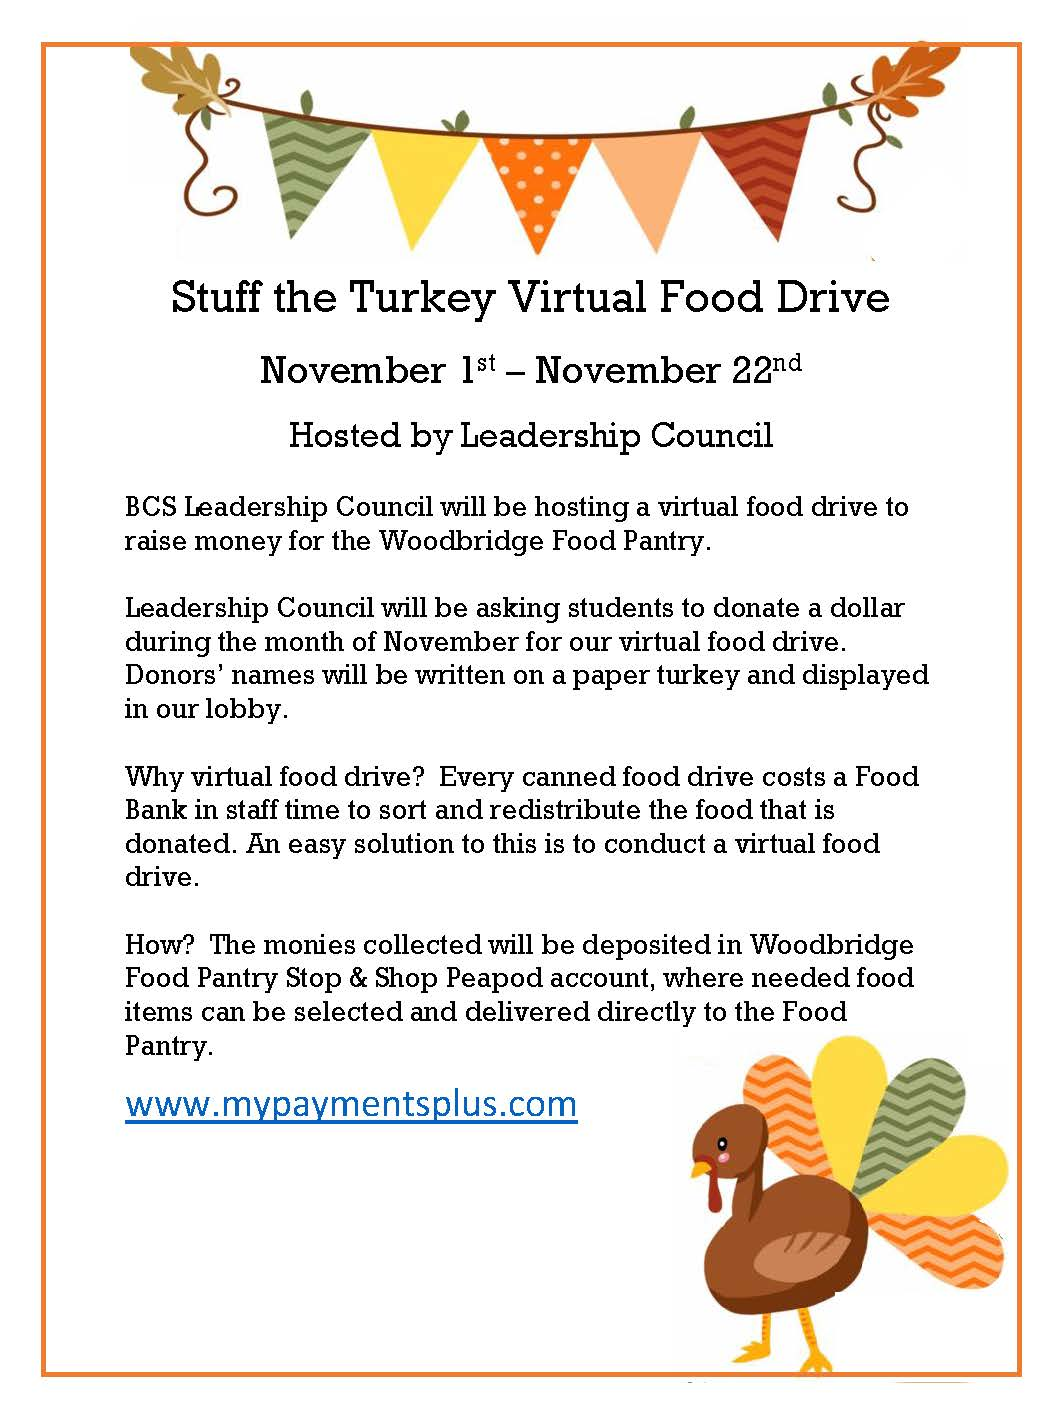 BCS Leadership Council Stuff the Turkey Virtual Food Drive Information